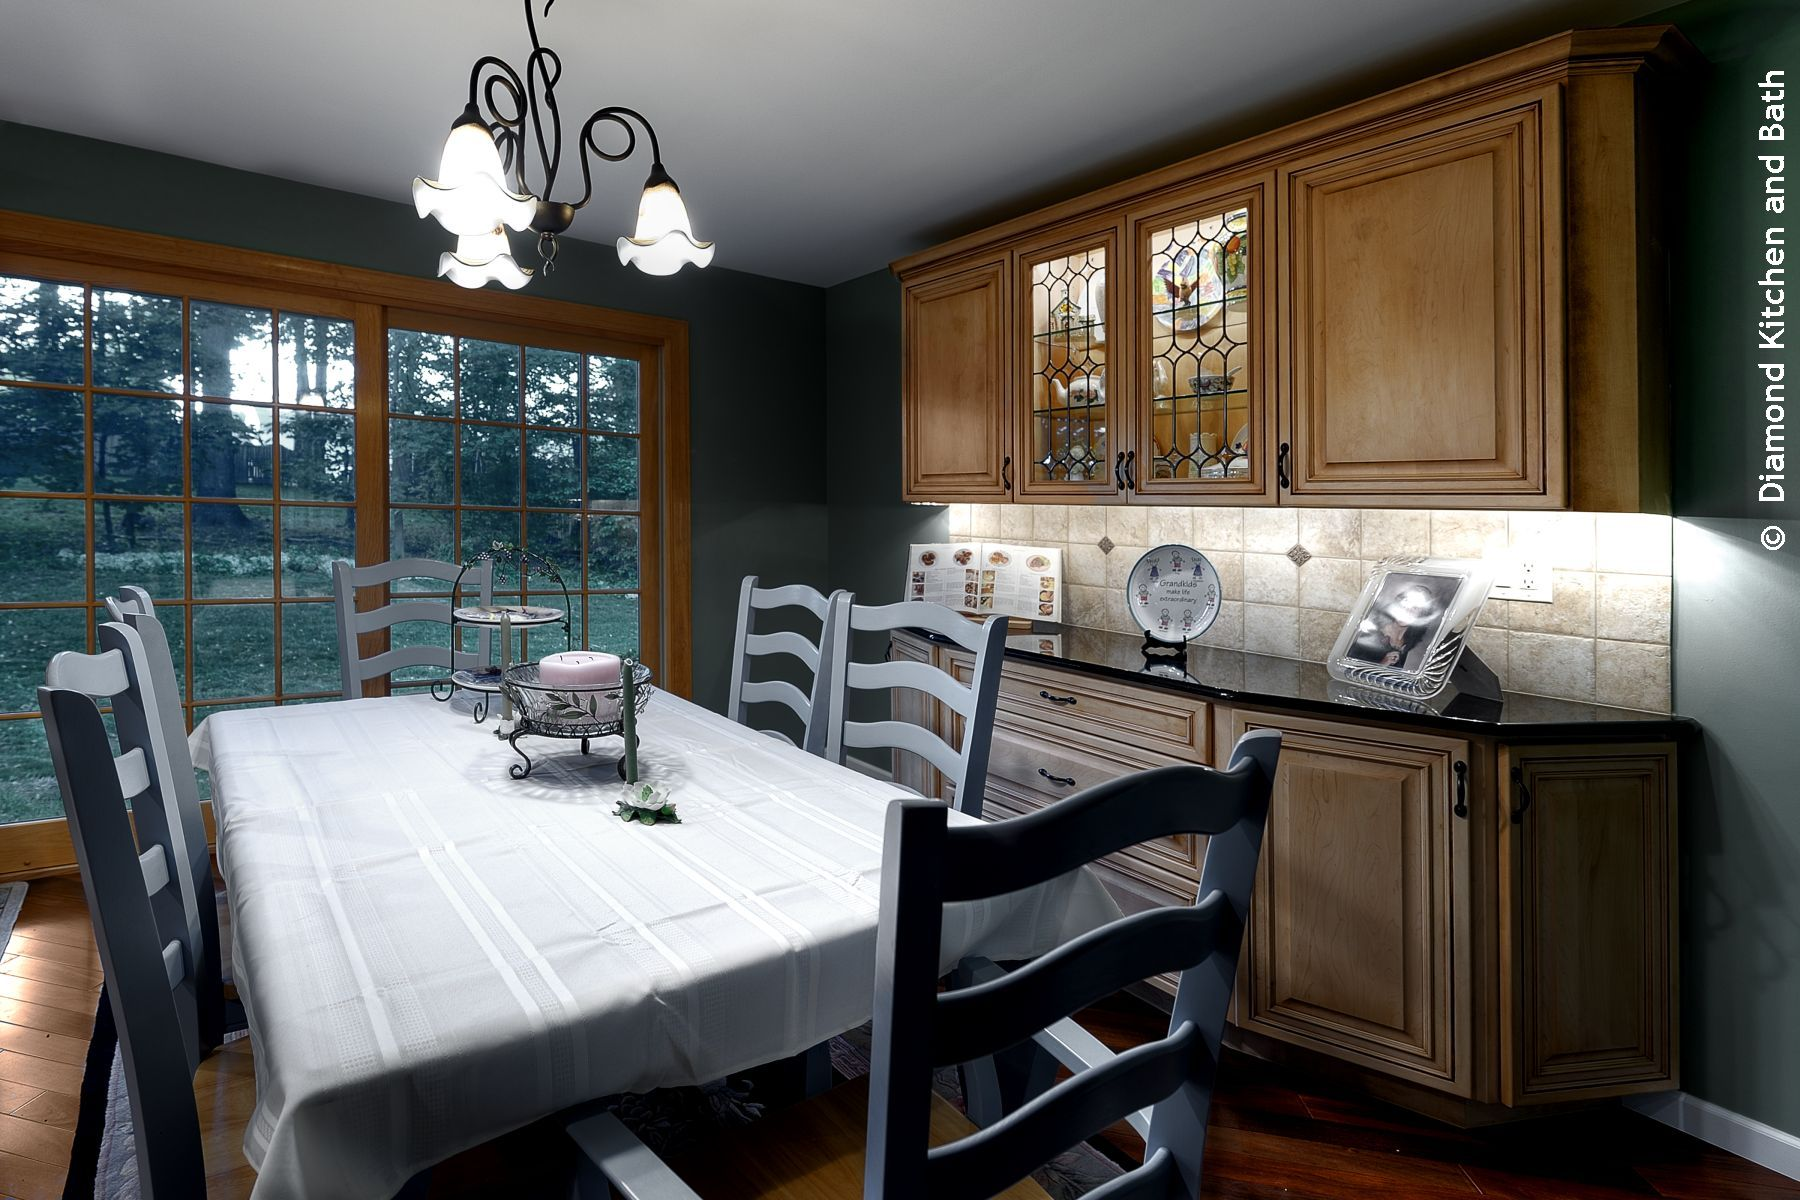 Kitchen Remodeling Virtual Tour in Holland, PA